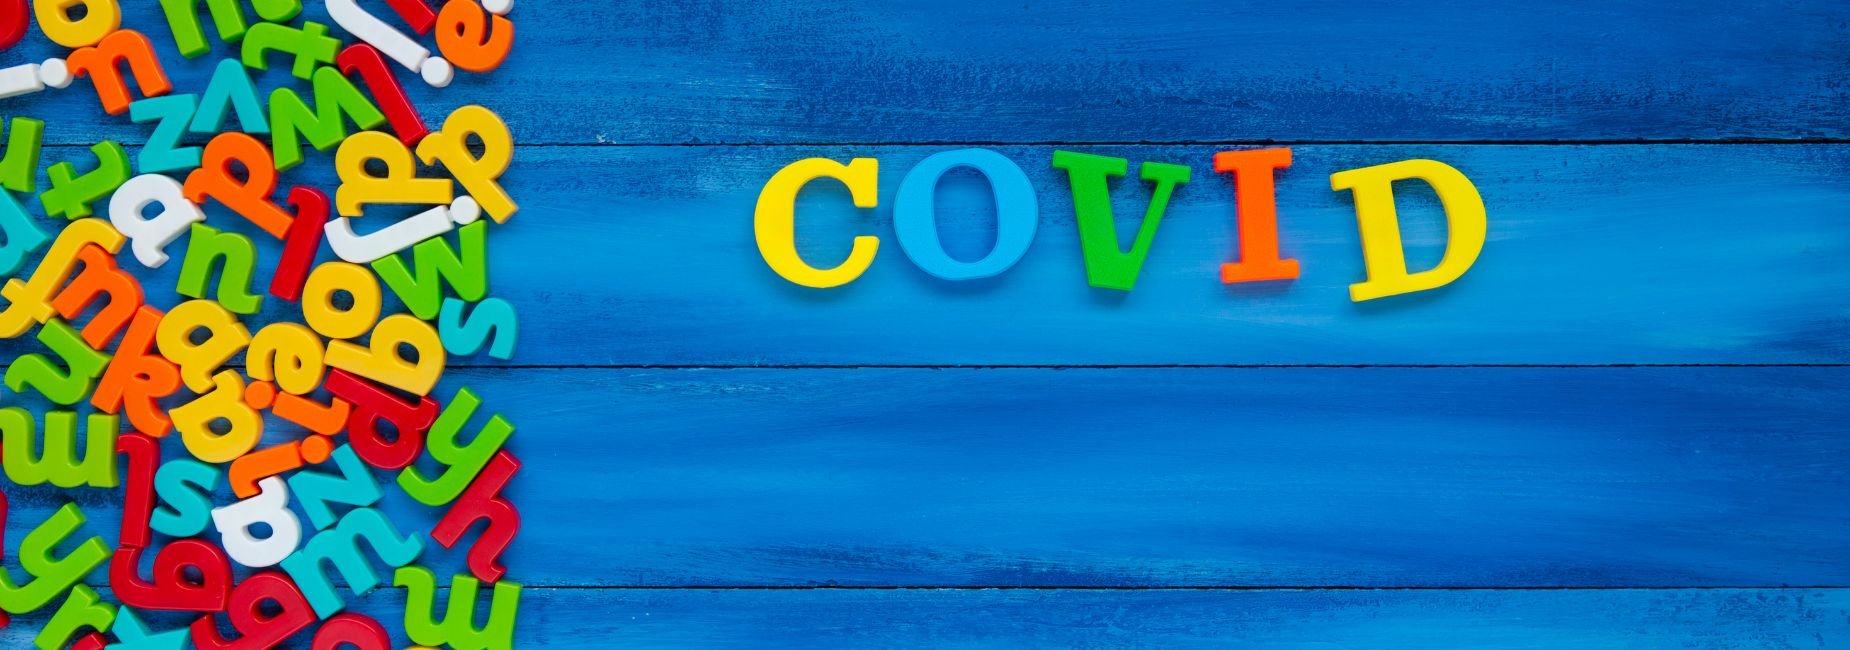 colorful letters spell COVID